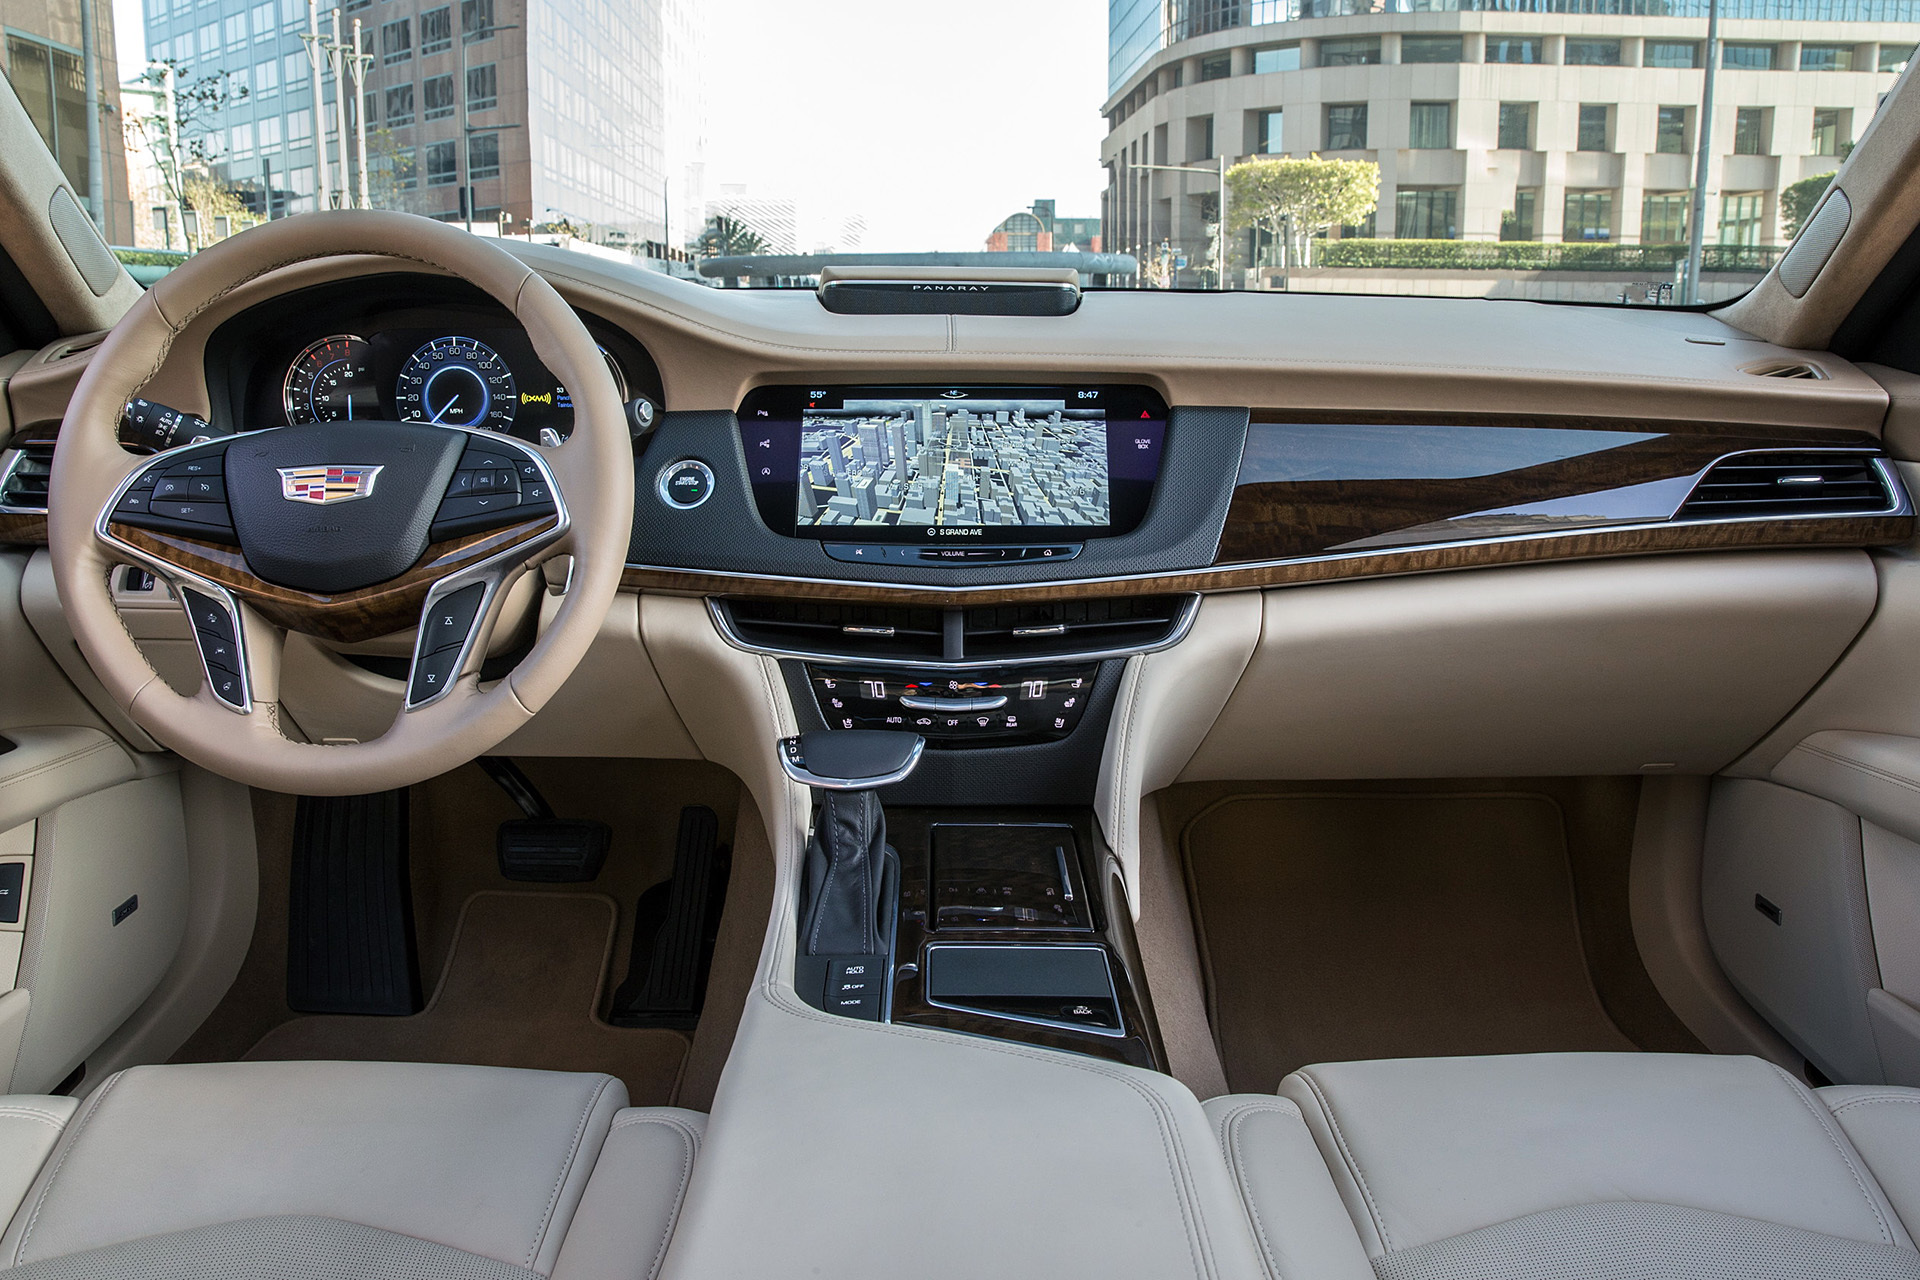 2016 Cadillac CT6 A Competition For German Sedans In USA 6